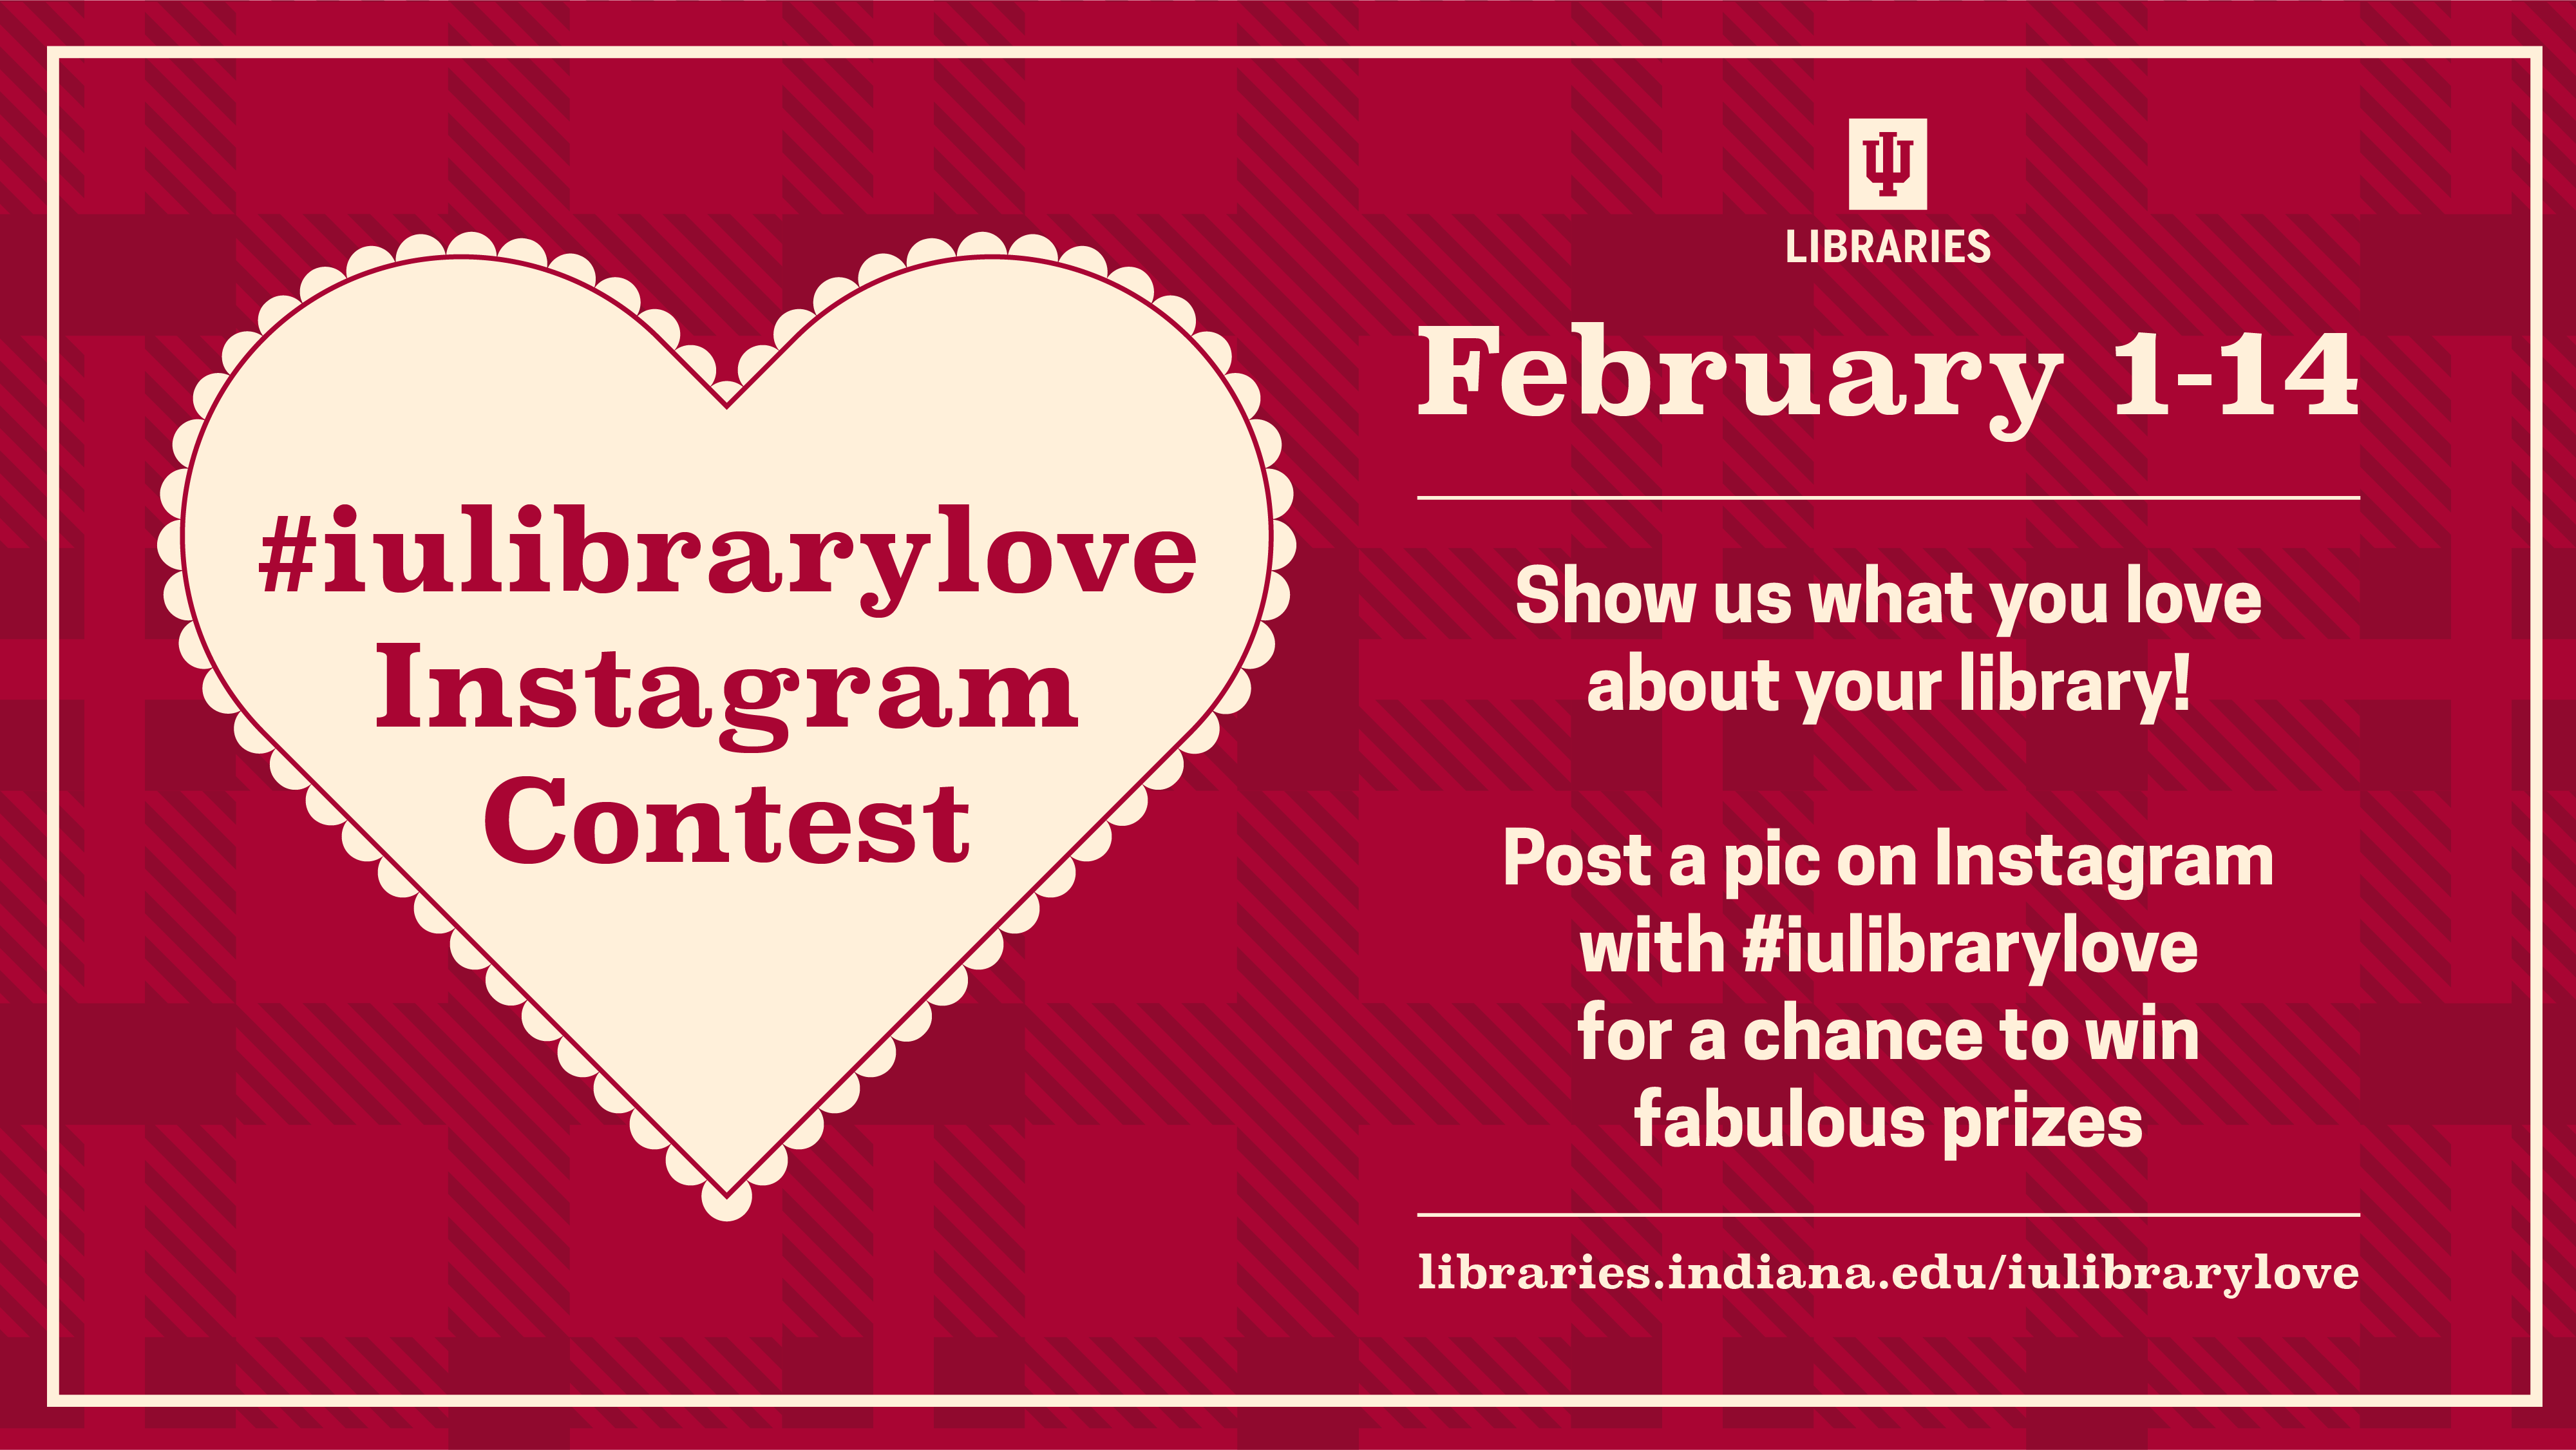 #iulibrarylove Instagram Contest